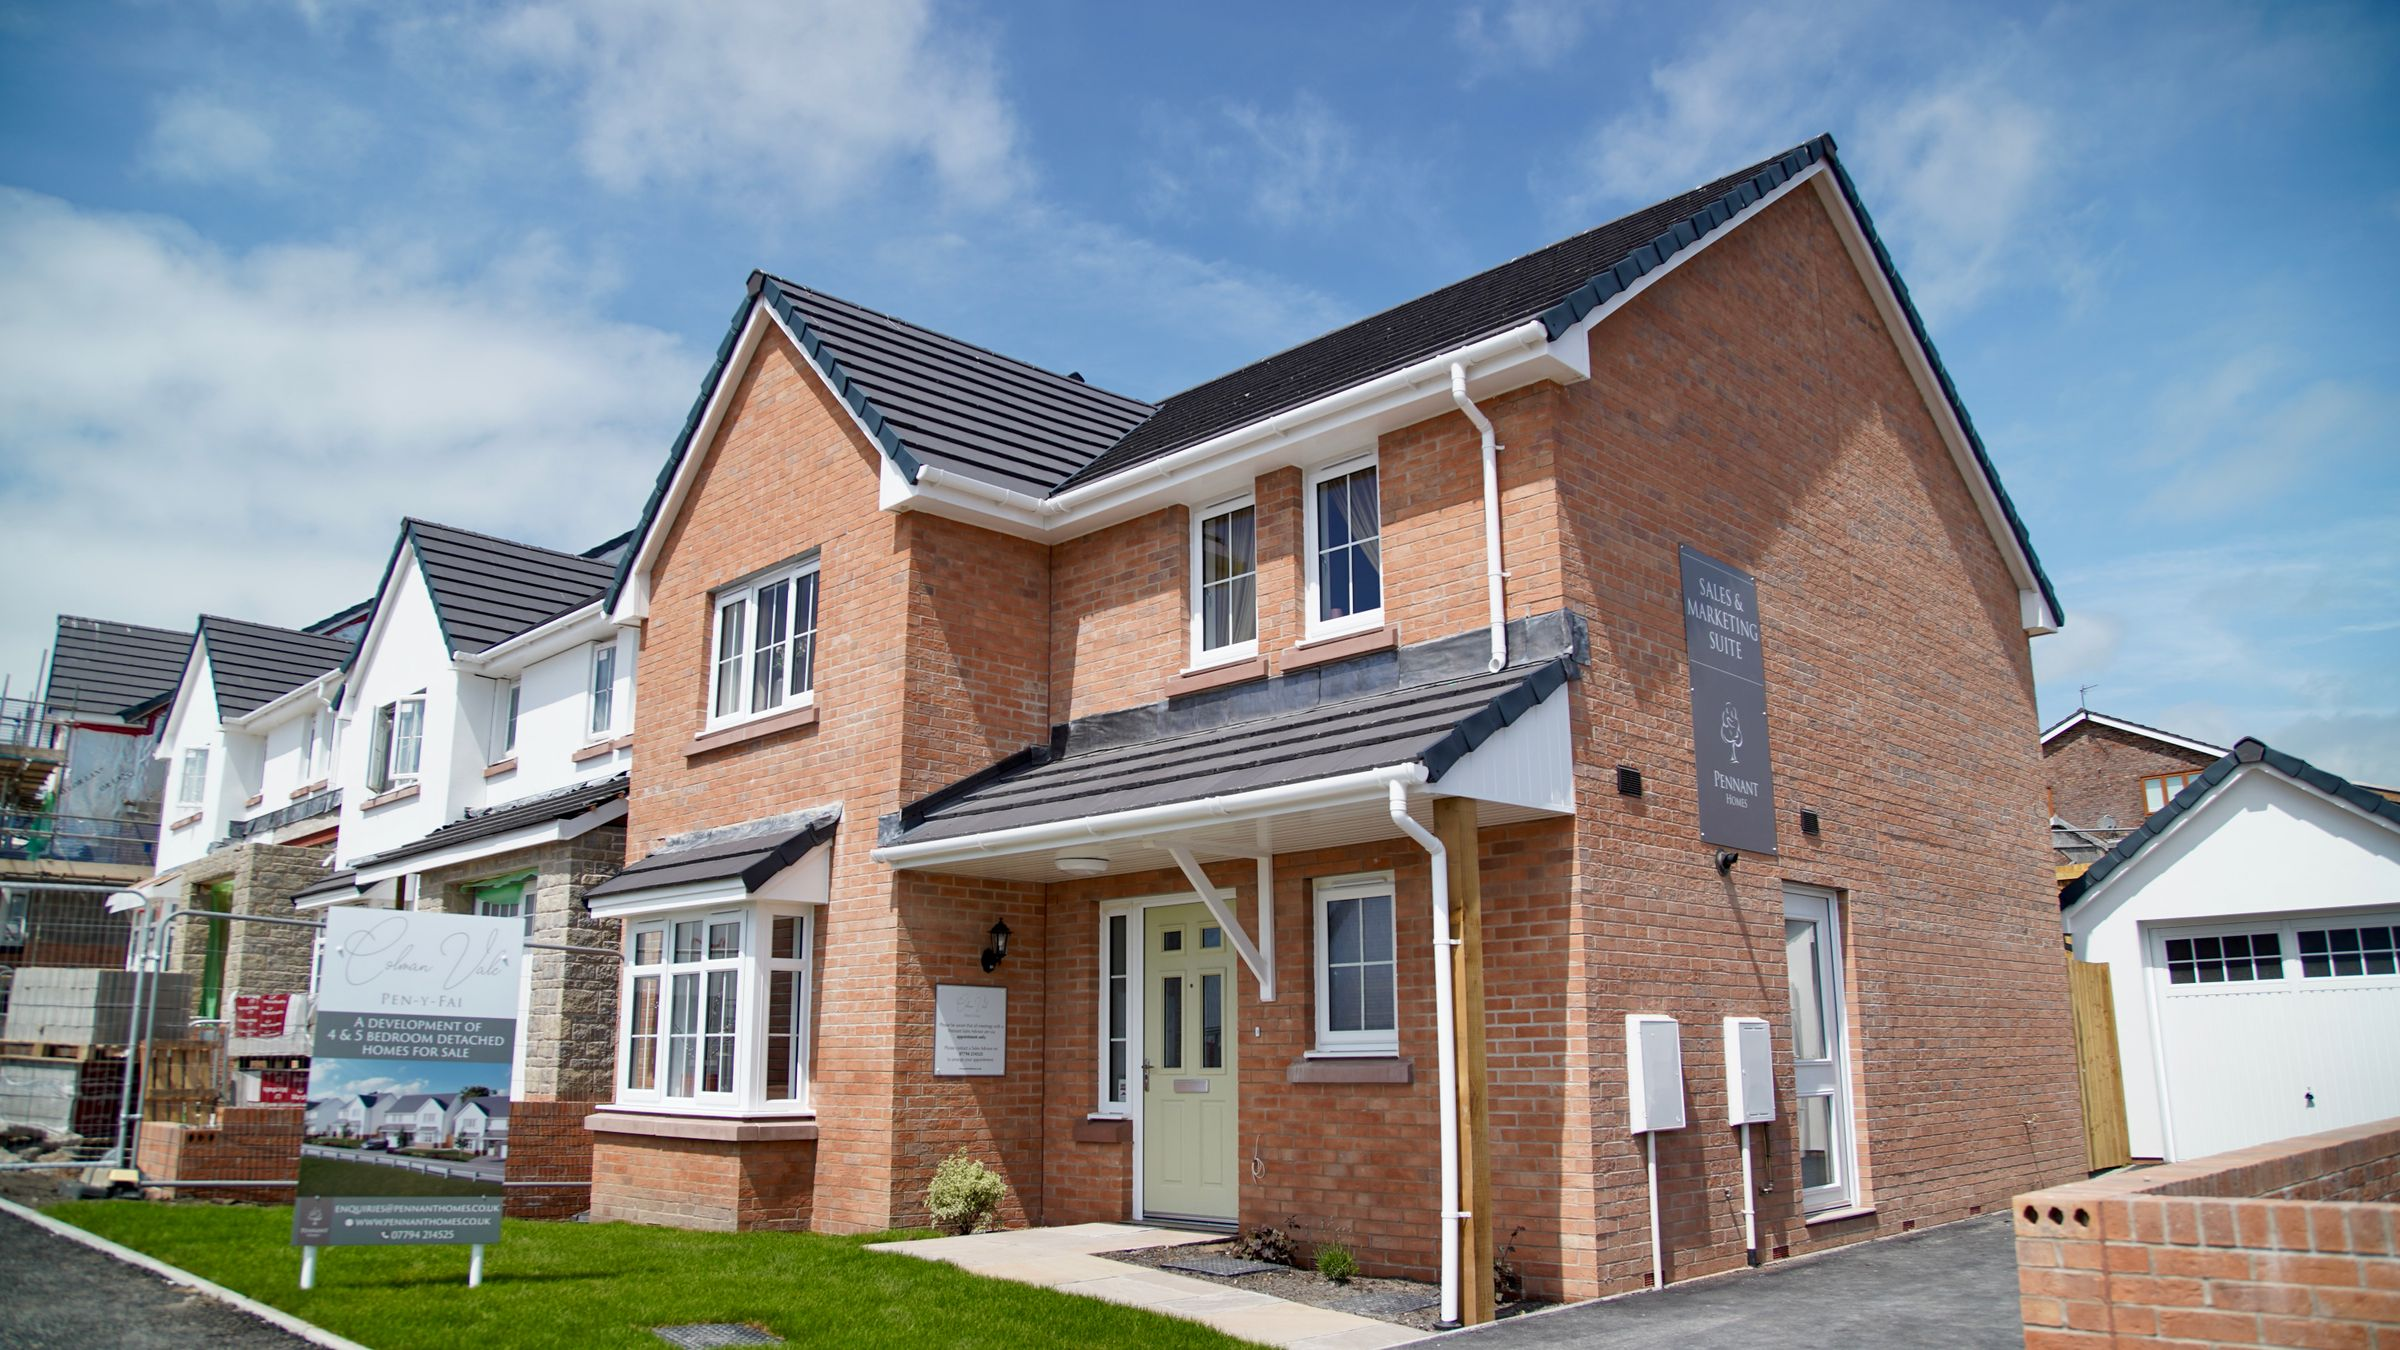 Property photo 1 of 10. The Show Home At Colman Vale, Pen Y Fai